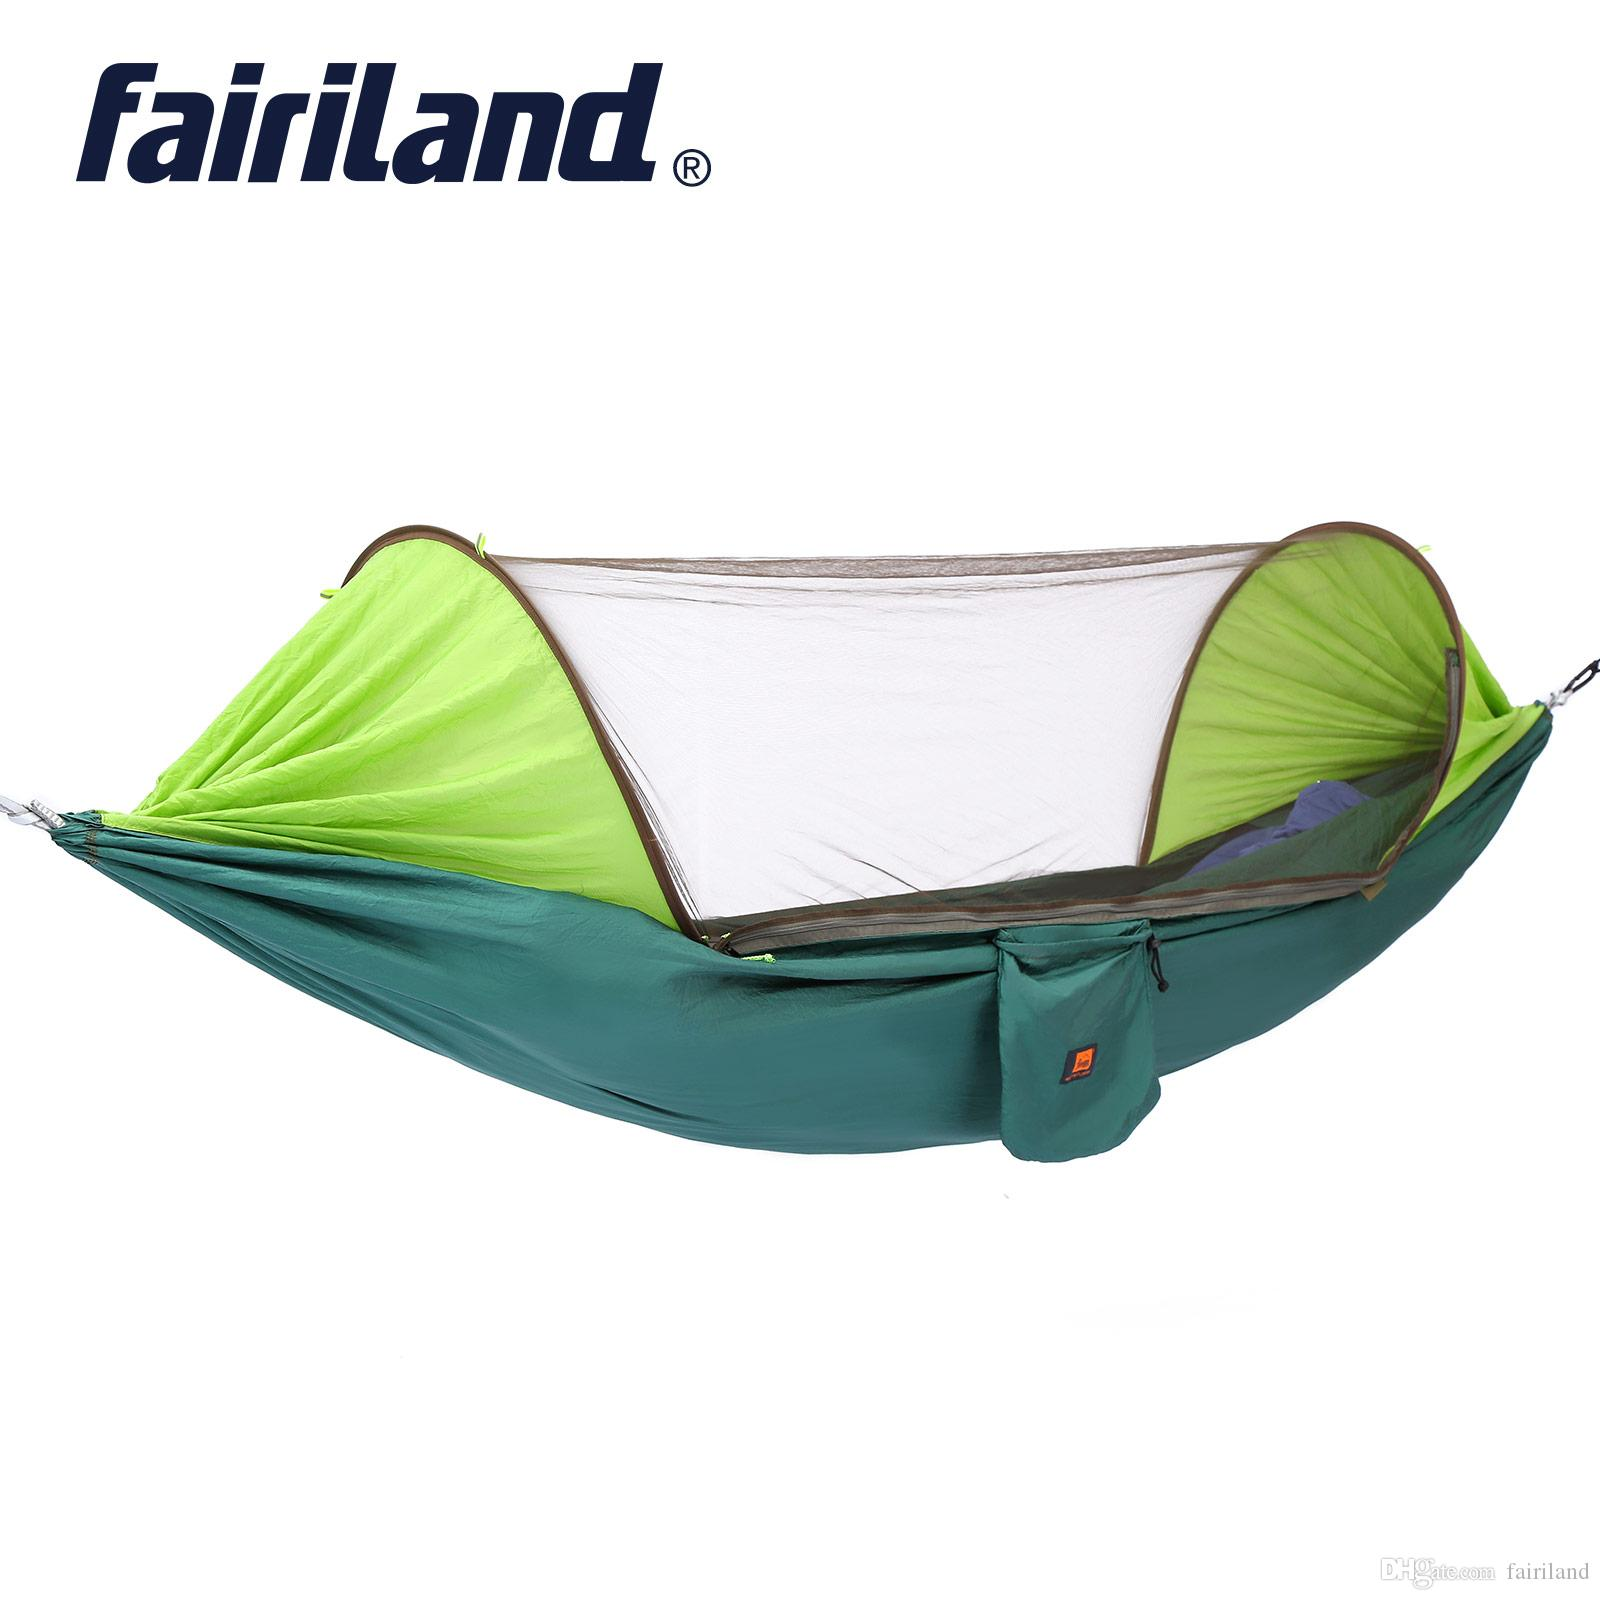 Home Textile Bedding Hammock Mosquito Net Parachute Hammock Outdoor Camping Travel Hanging Portable Bed Hanging Bed Hunting Sleeping Swing